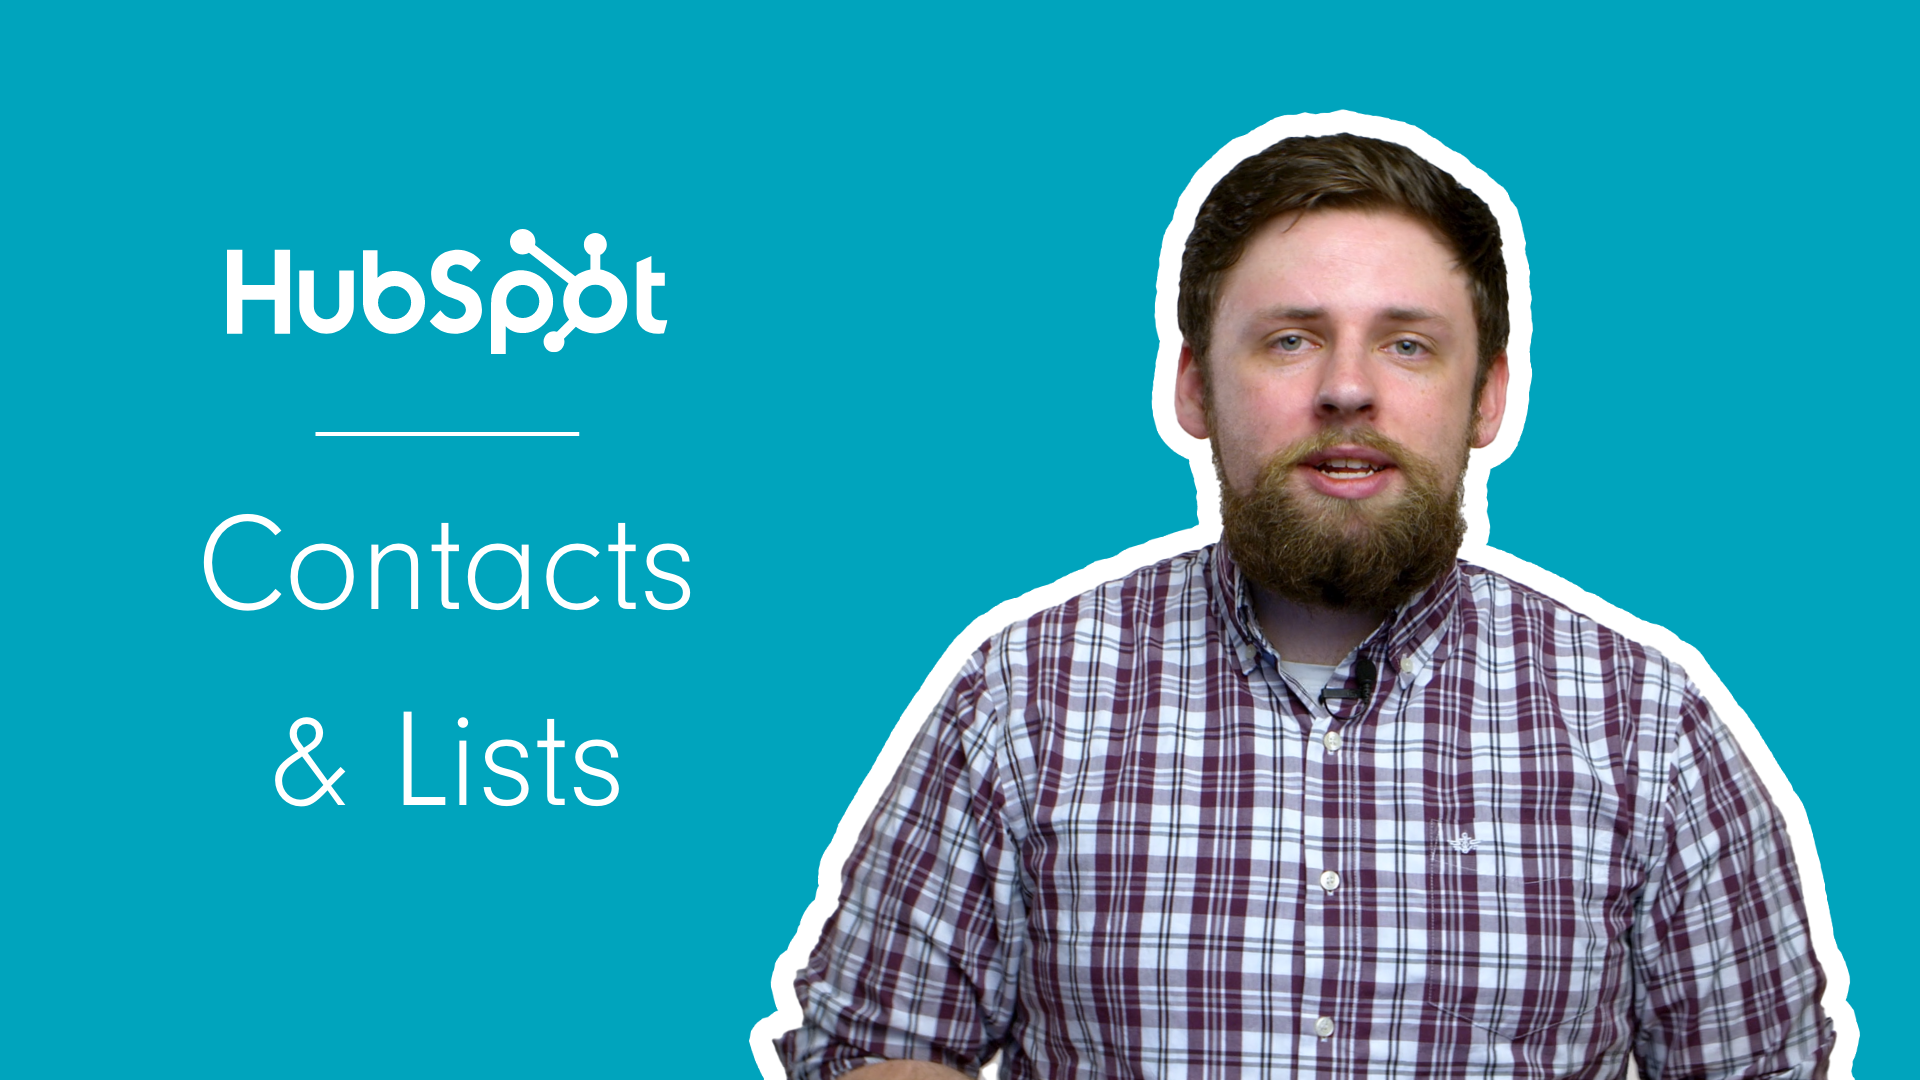 Managing Contacts & Creating Lists in HubSpot